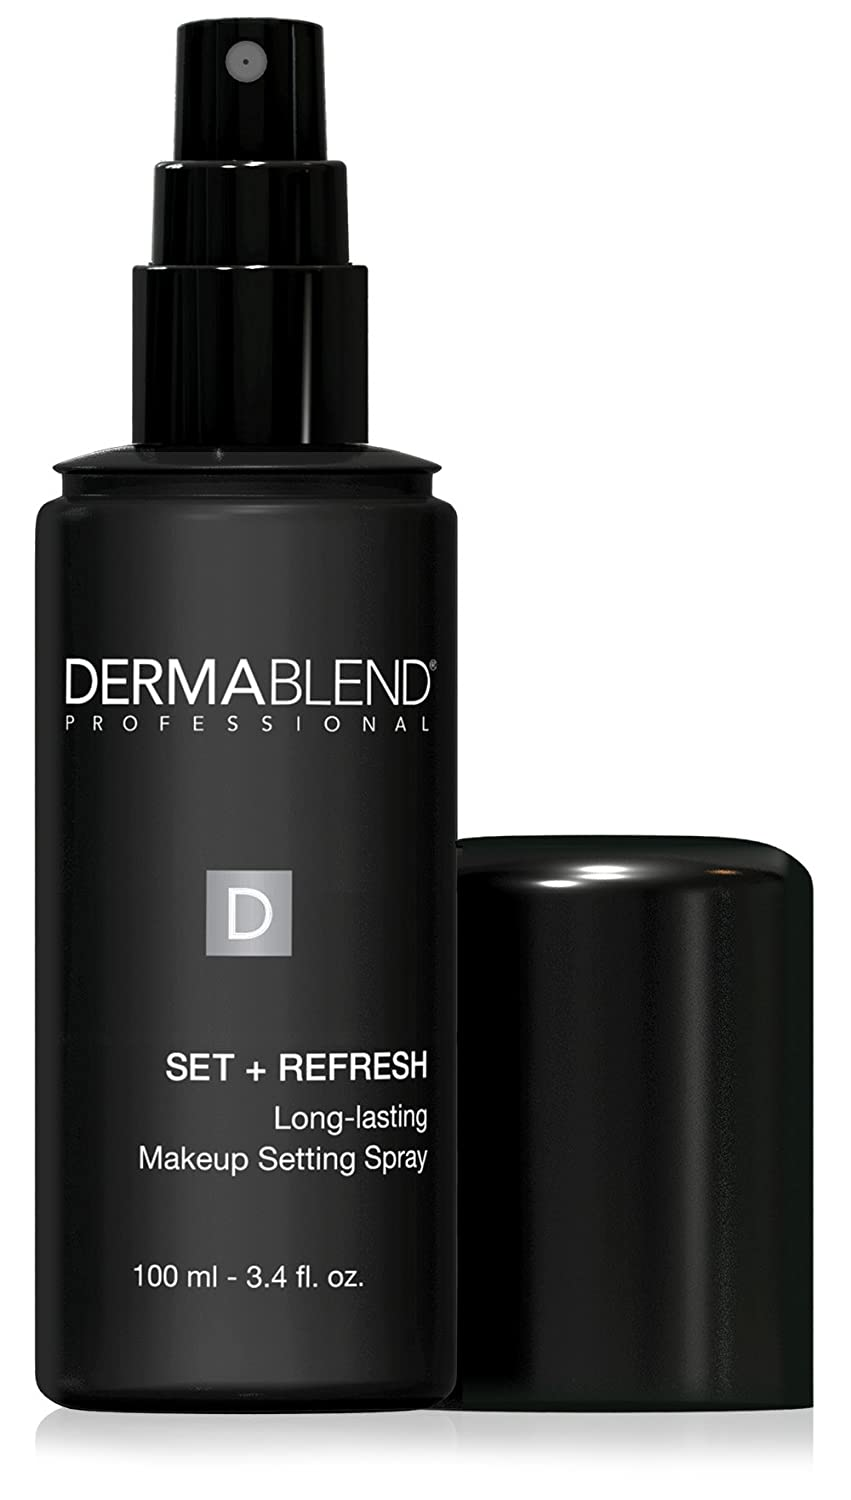 Dermablend Set Plus Refresh Long Lasting Makeup Setting Spray 3.4 Fluid Ounces